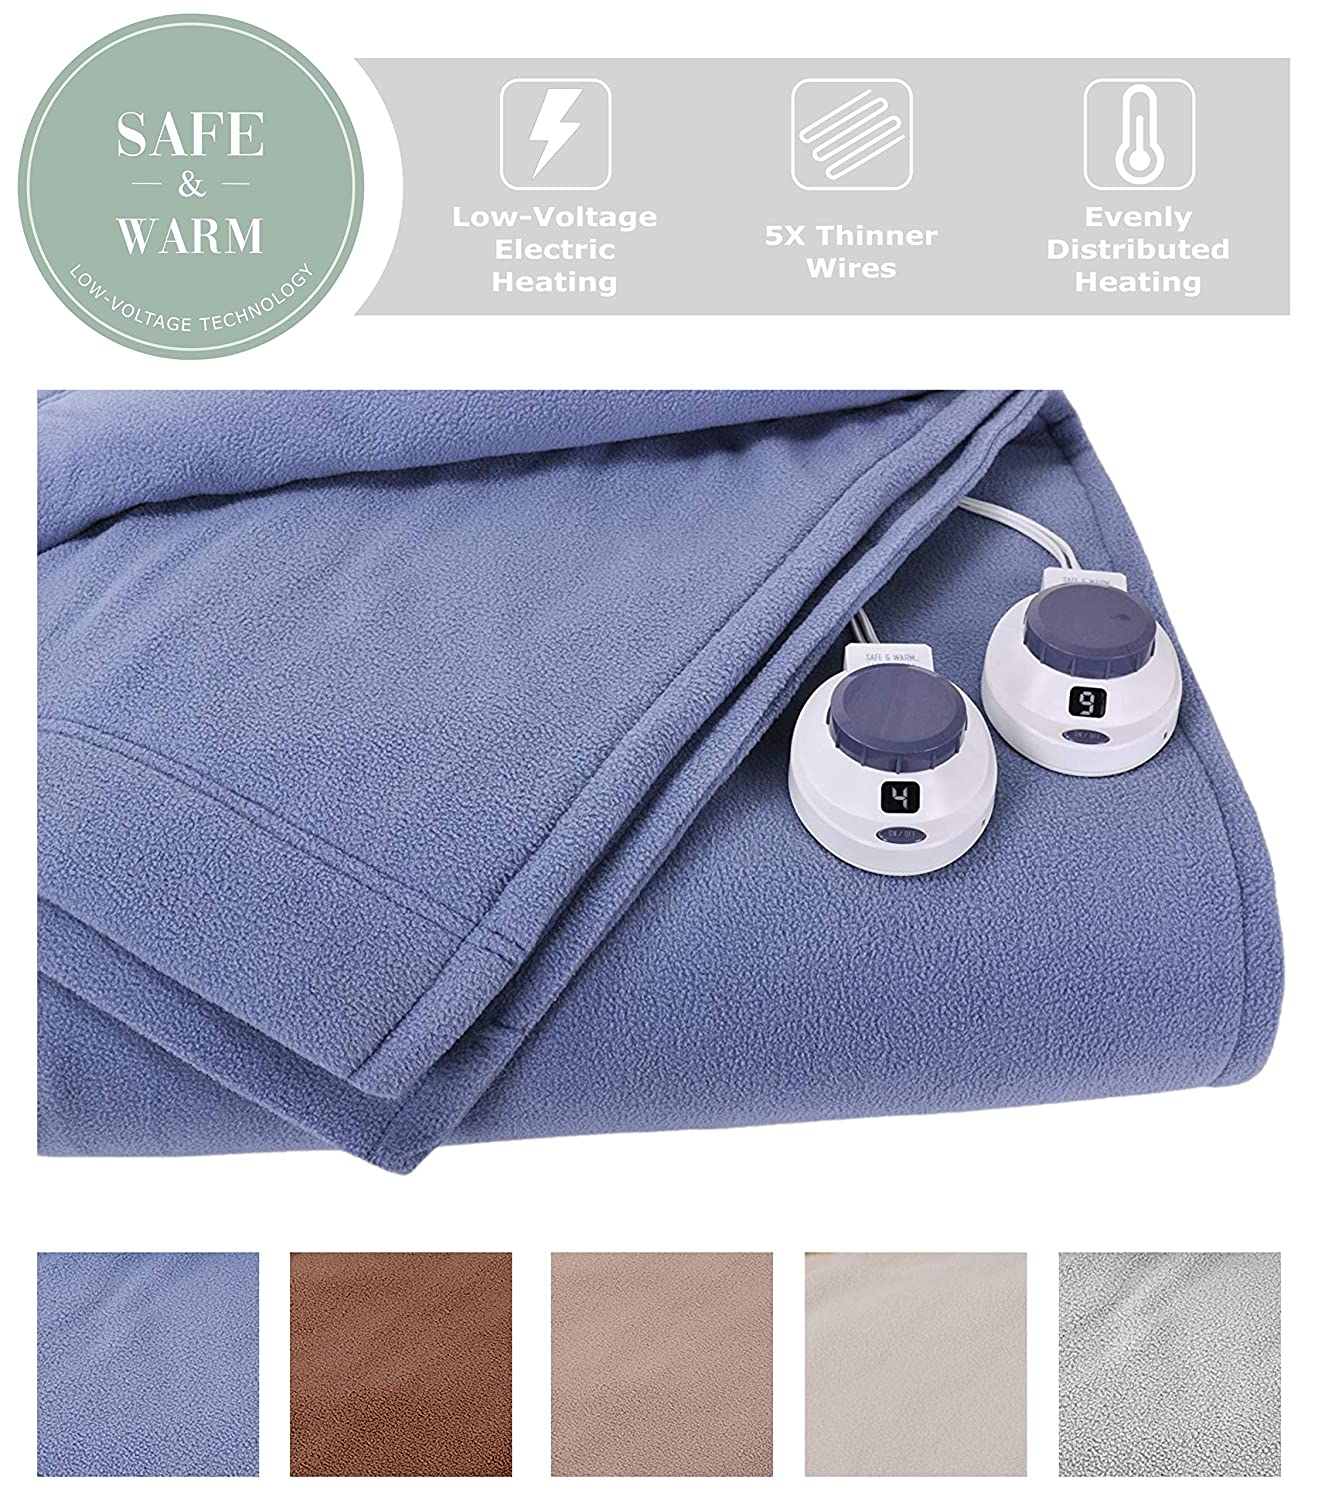 SoftHeat by Perfect Fit | Luxury Fleece Electric Heated Blanket with Safe & Warm Low-Voltage Technology (Queen, Slate Blue)